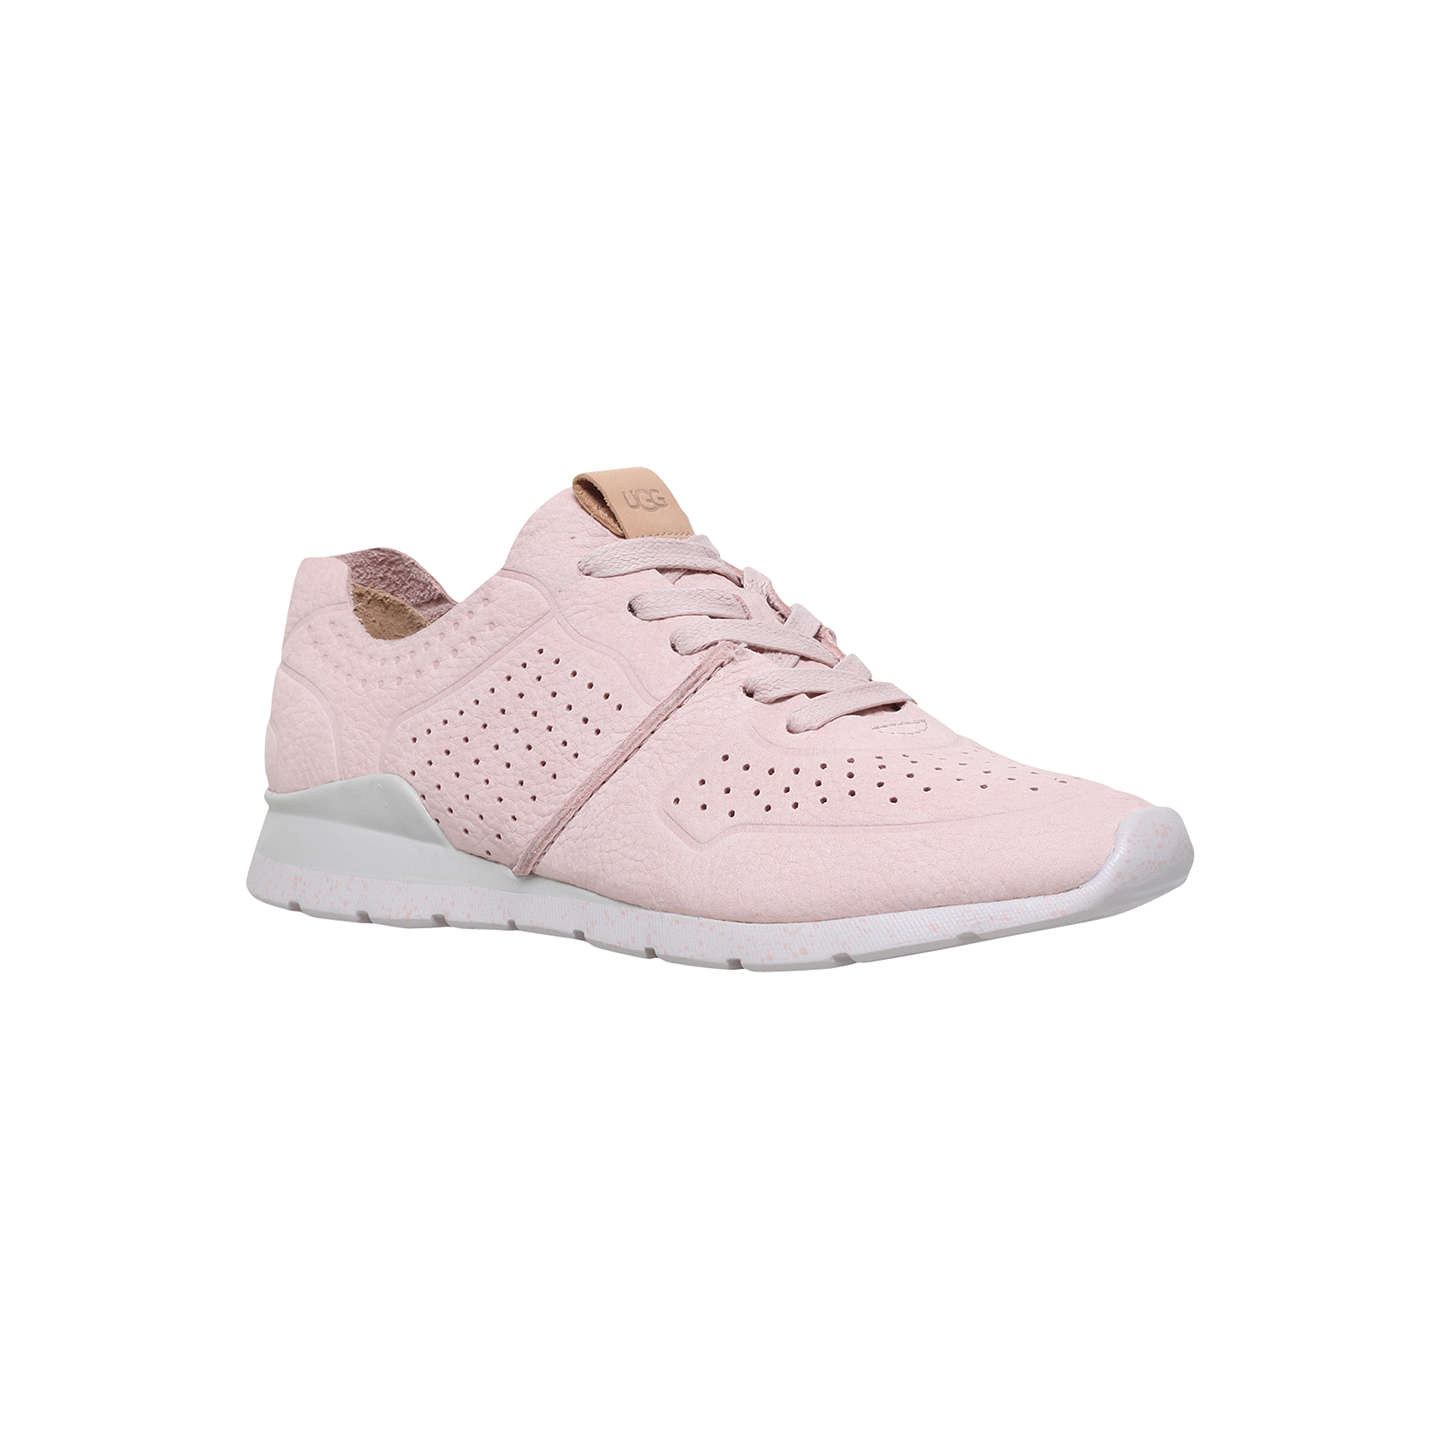 UGG Tye Lace Up Trainers, Nubuck